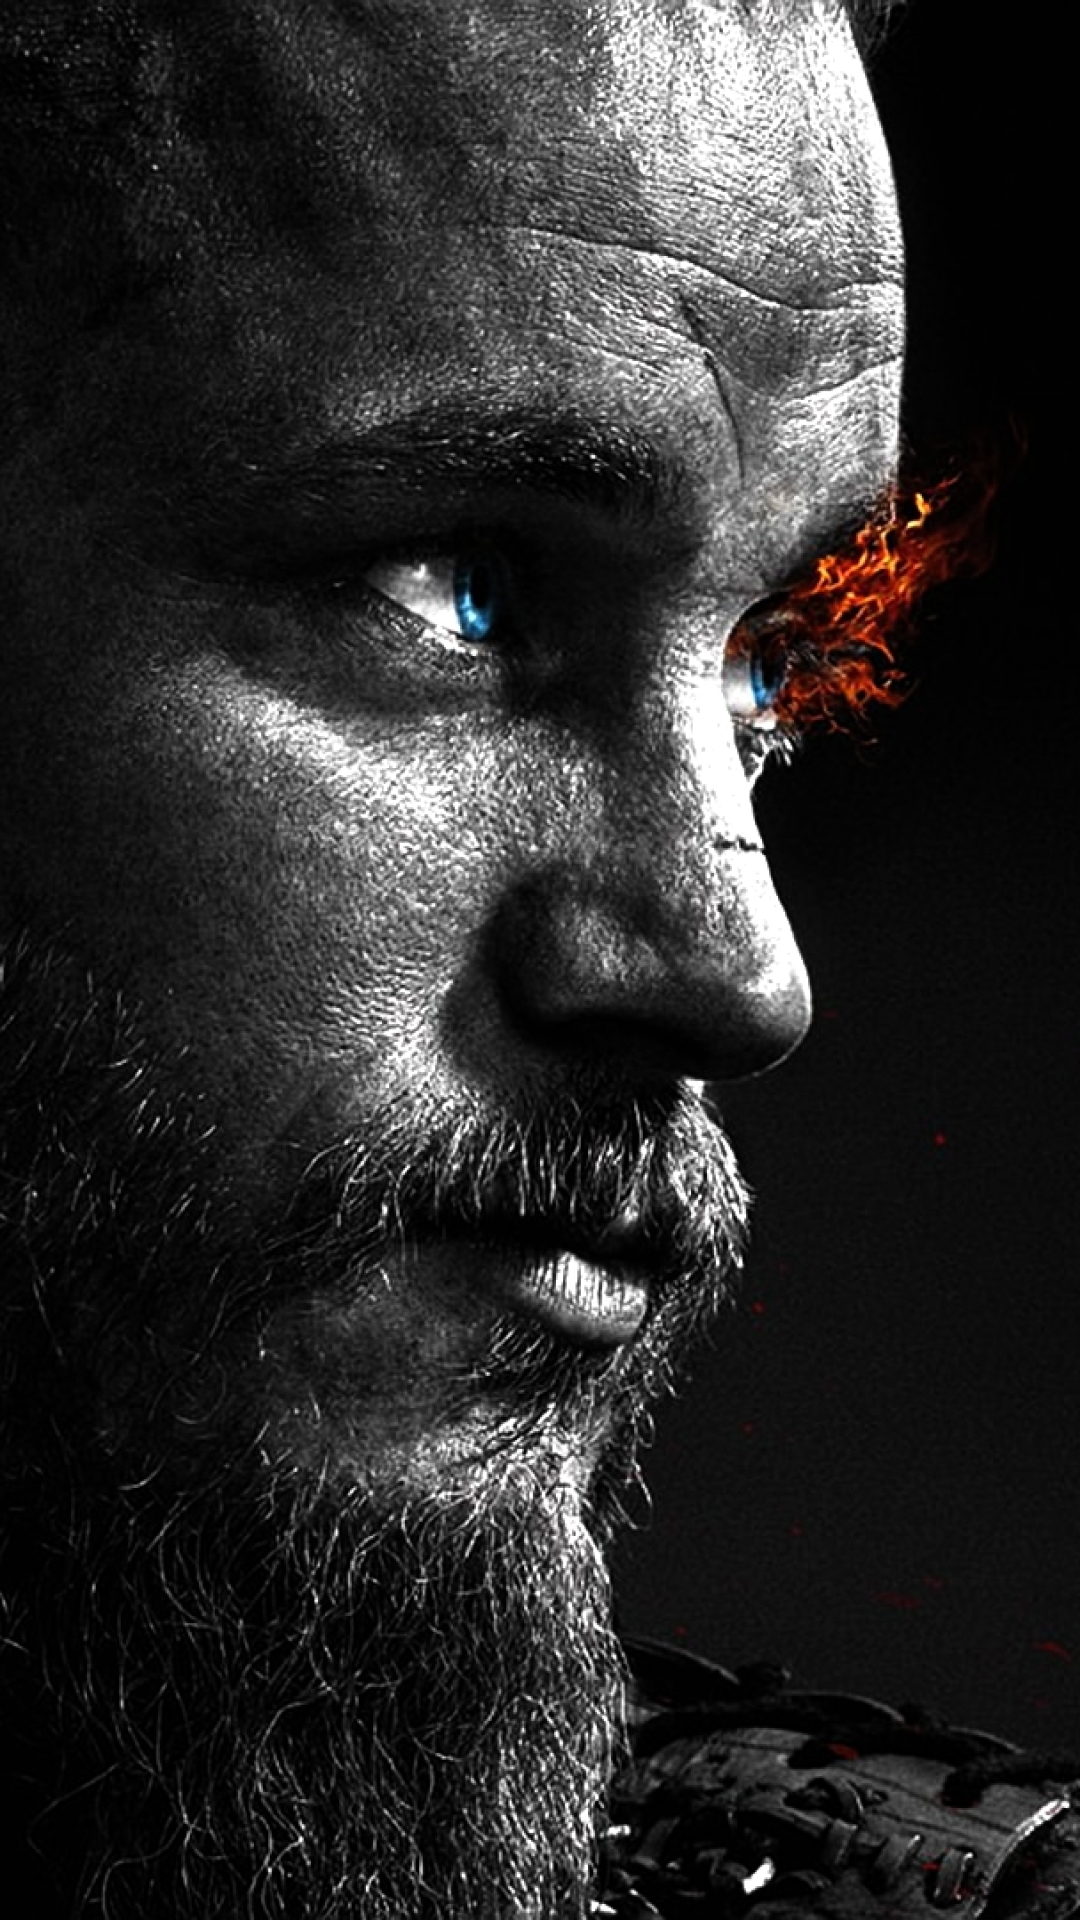 Ragnar Lothbrok Wallpaper Quotes Vikings Wallpaper For Iphone X 8 7 6 Free Download On